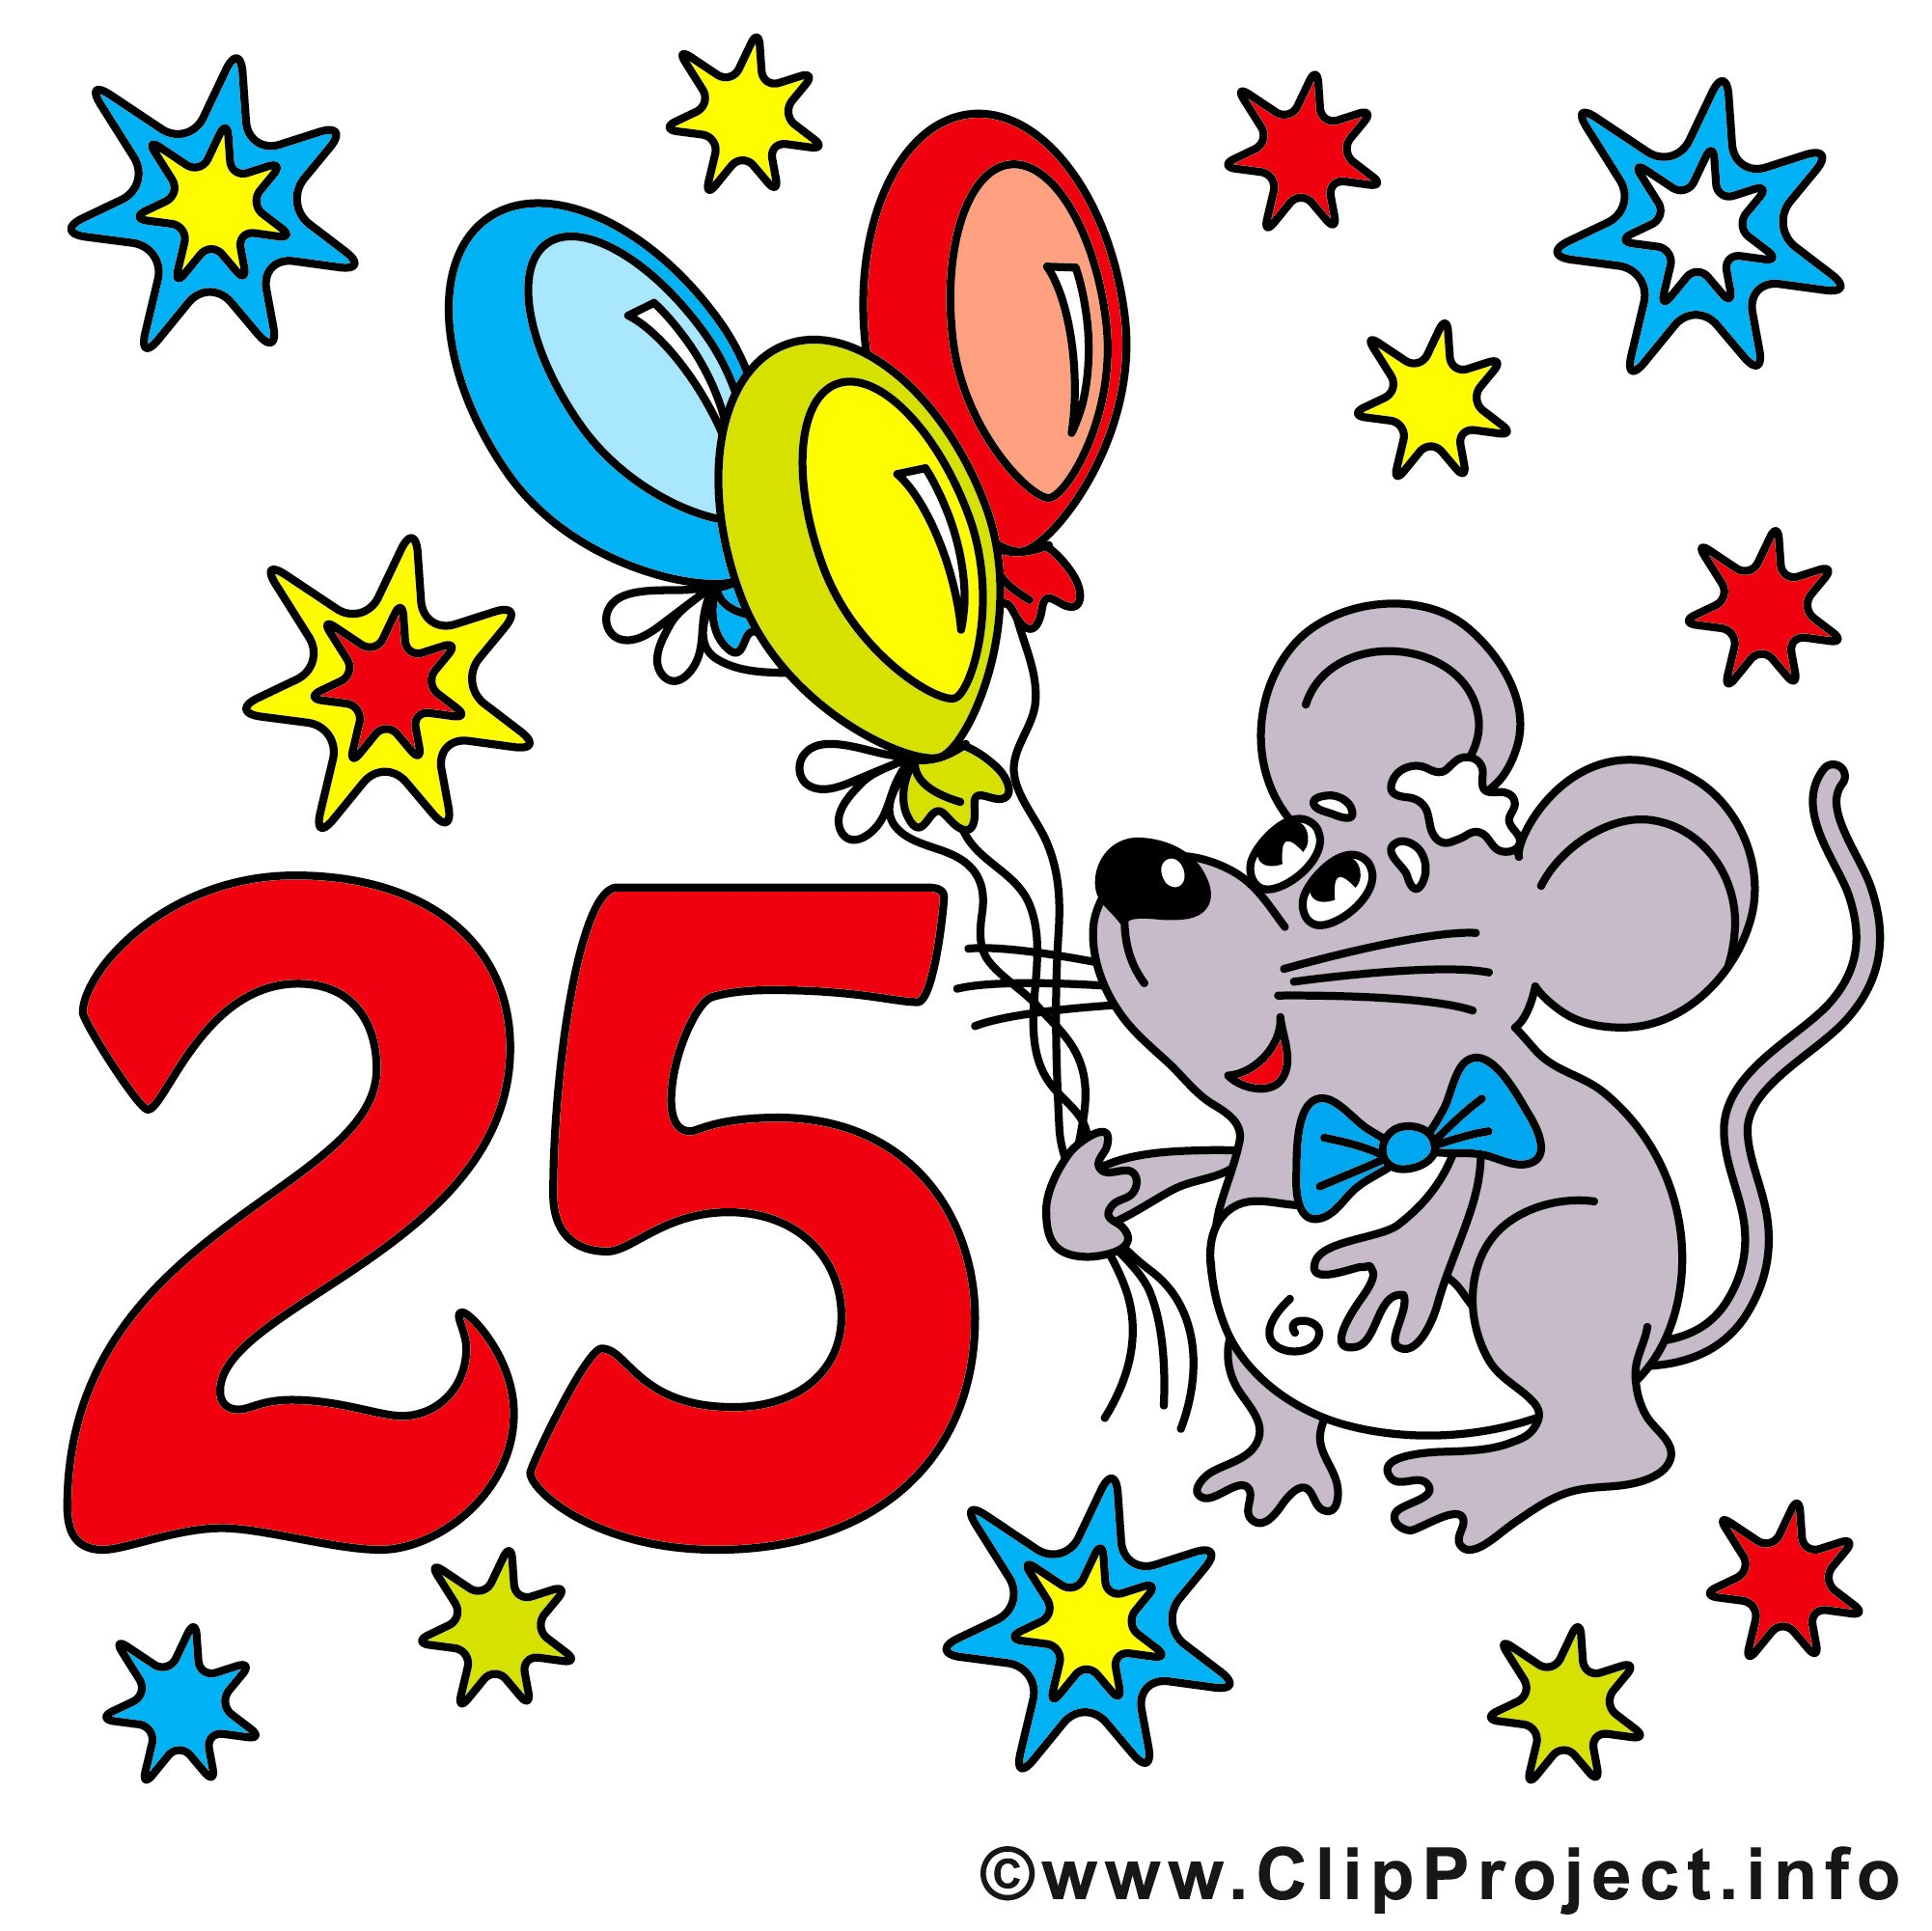 3 for 25 clipart picture free stock 25 jähriges dienstjubiläum clipart 3 » Clipart Portal picture free stock